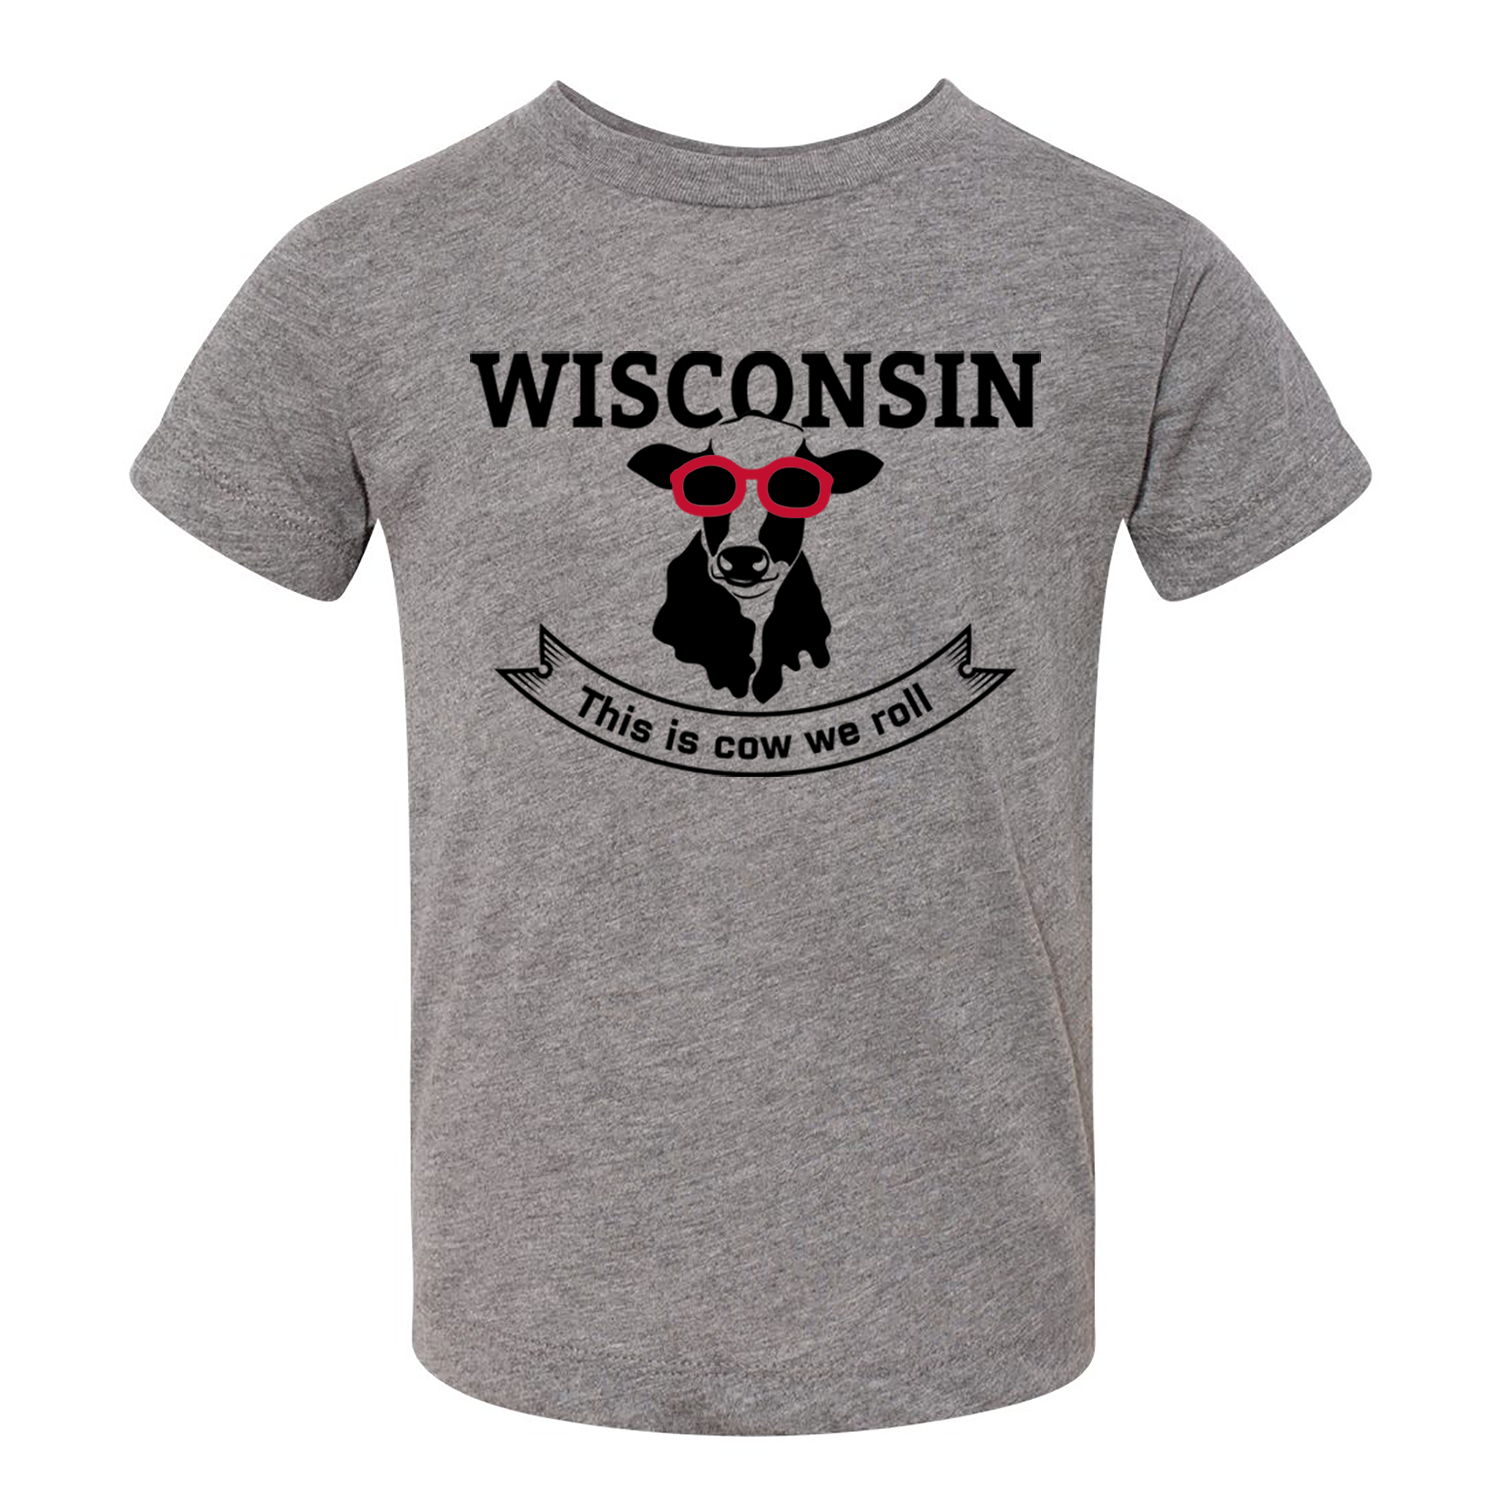 This Is Cow We Roll Wisconsin Toddler Triblend Tee